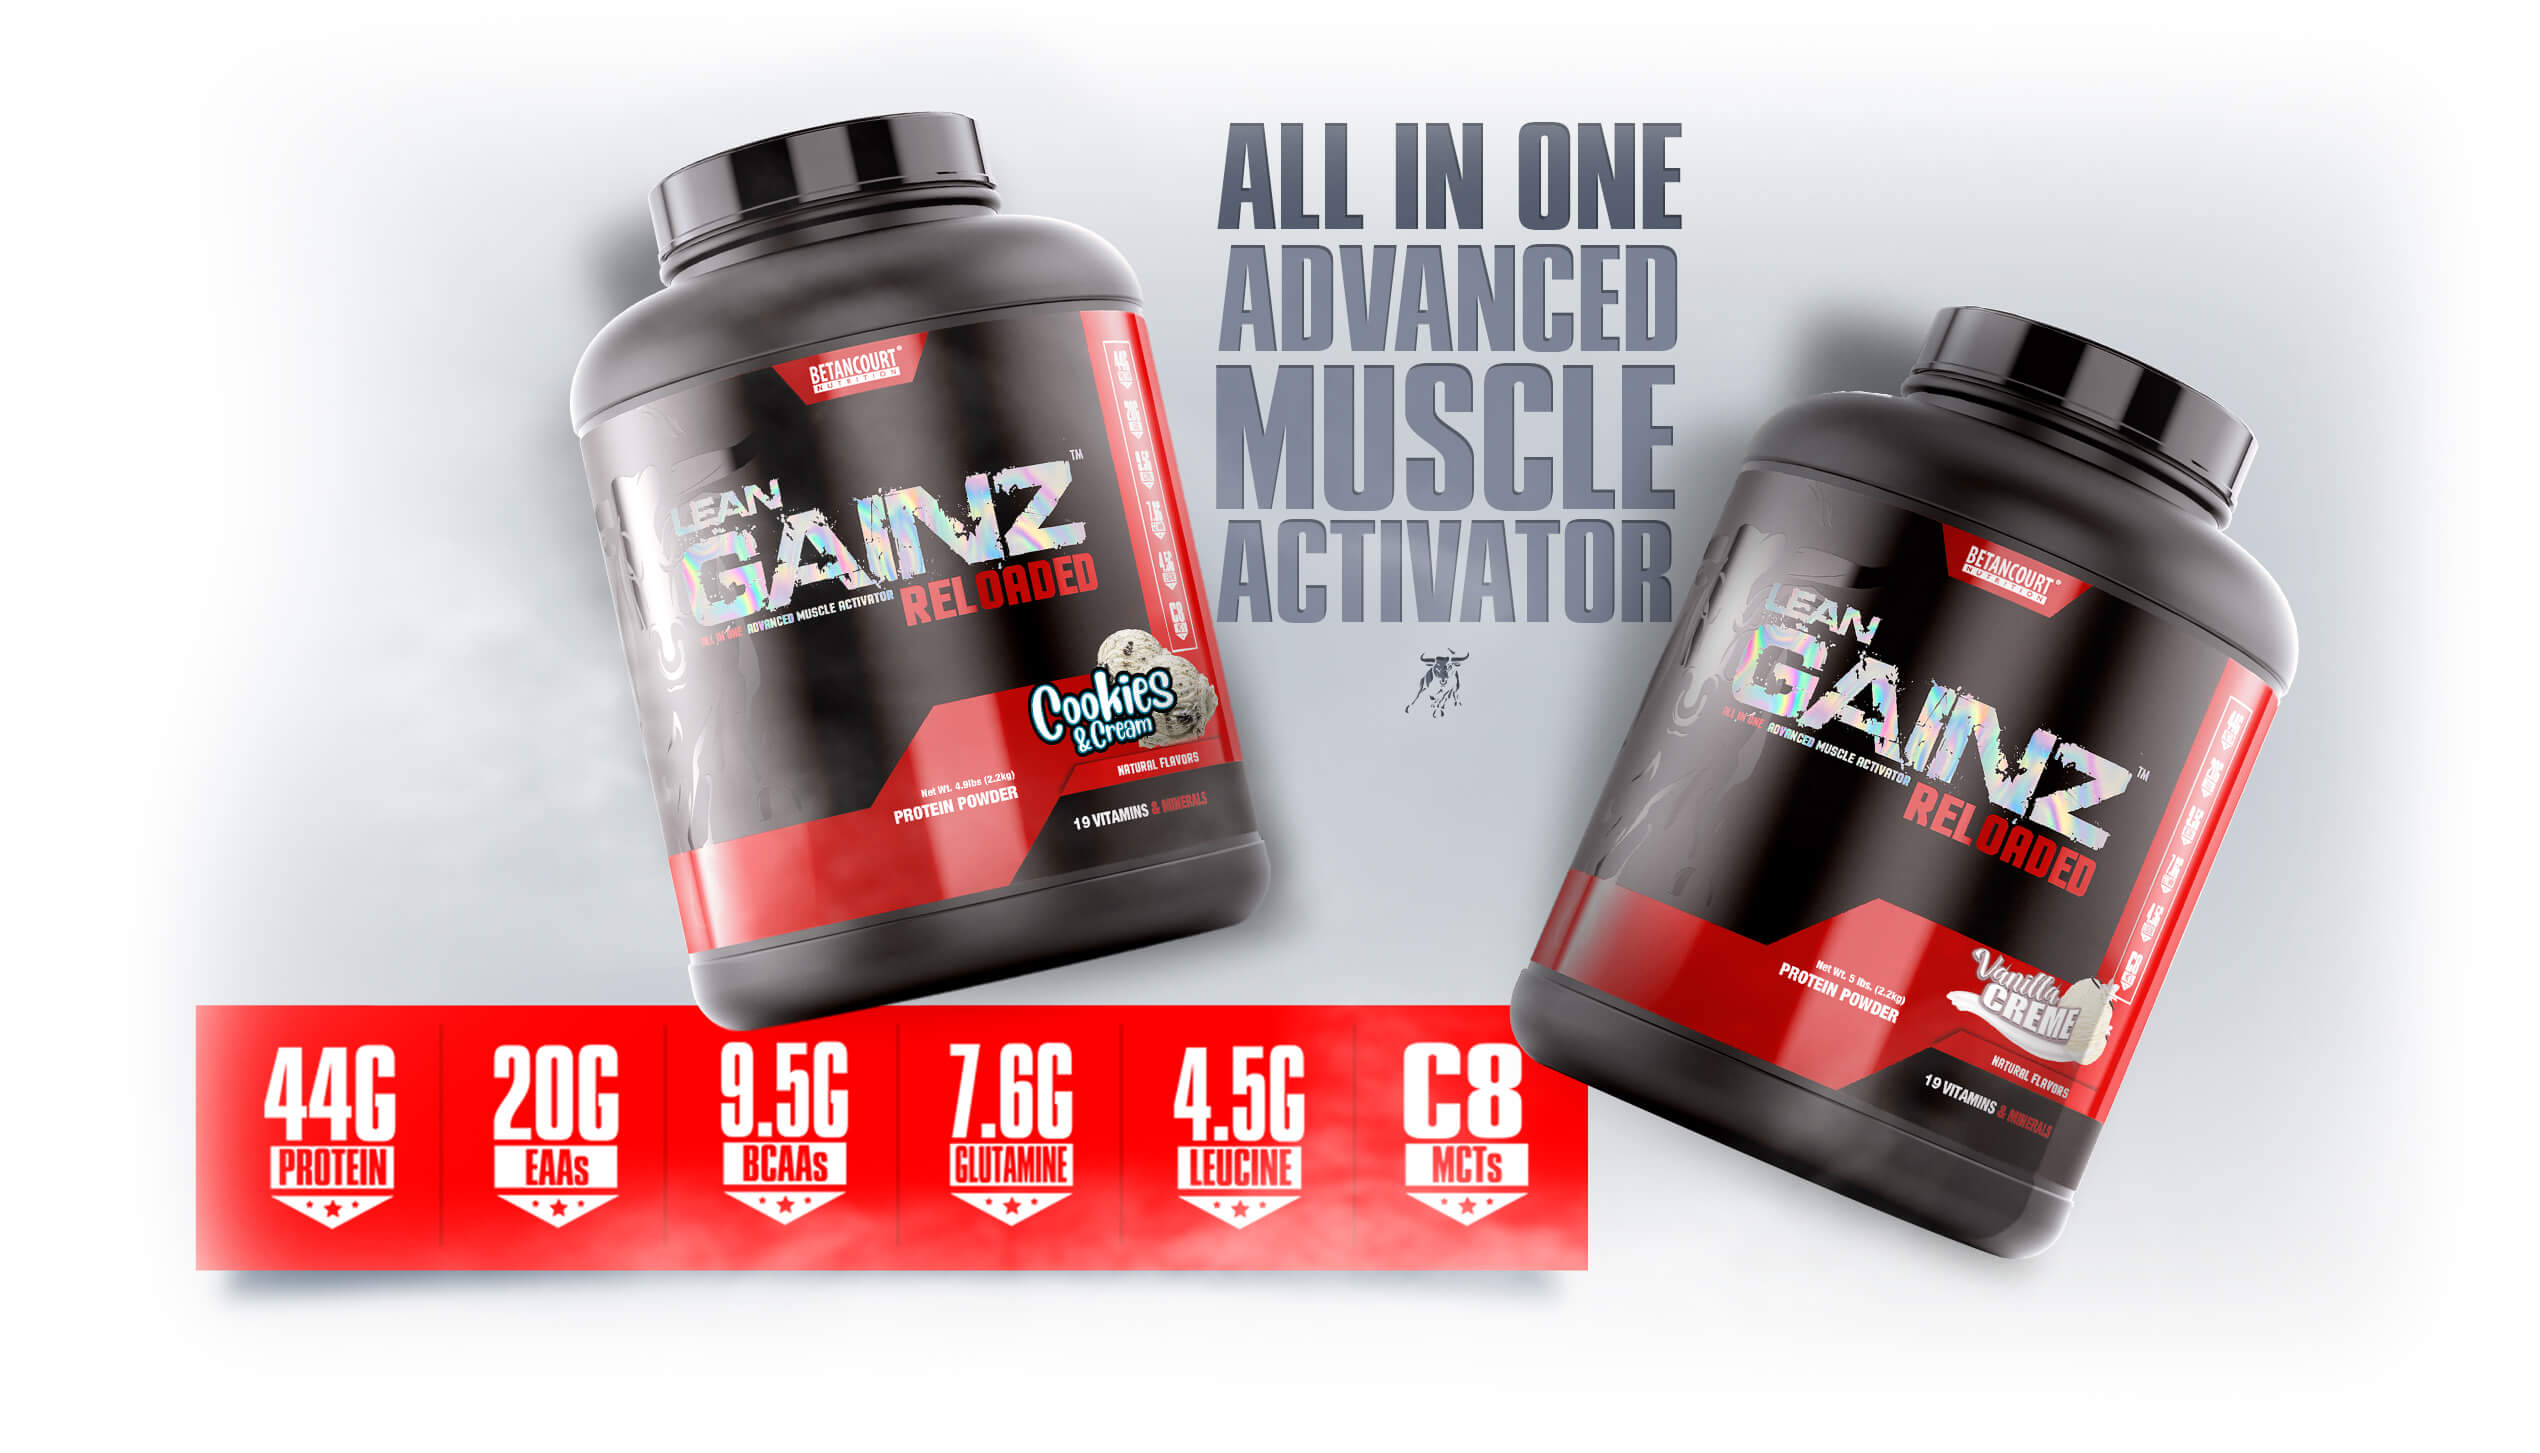 LEAN GAINZ ALL IN ONE ADVANCED MUSCLE ACTIVATOR